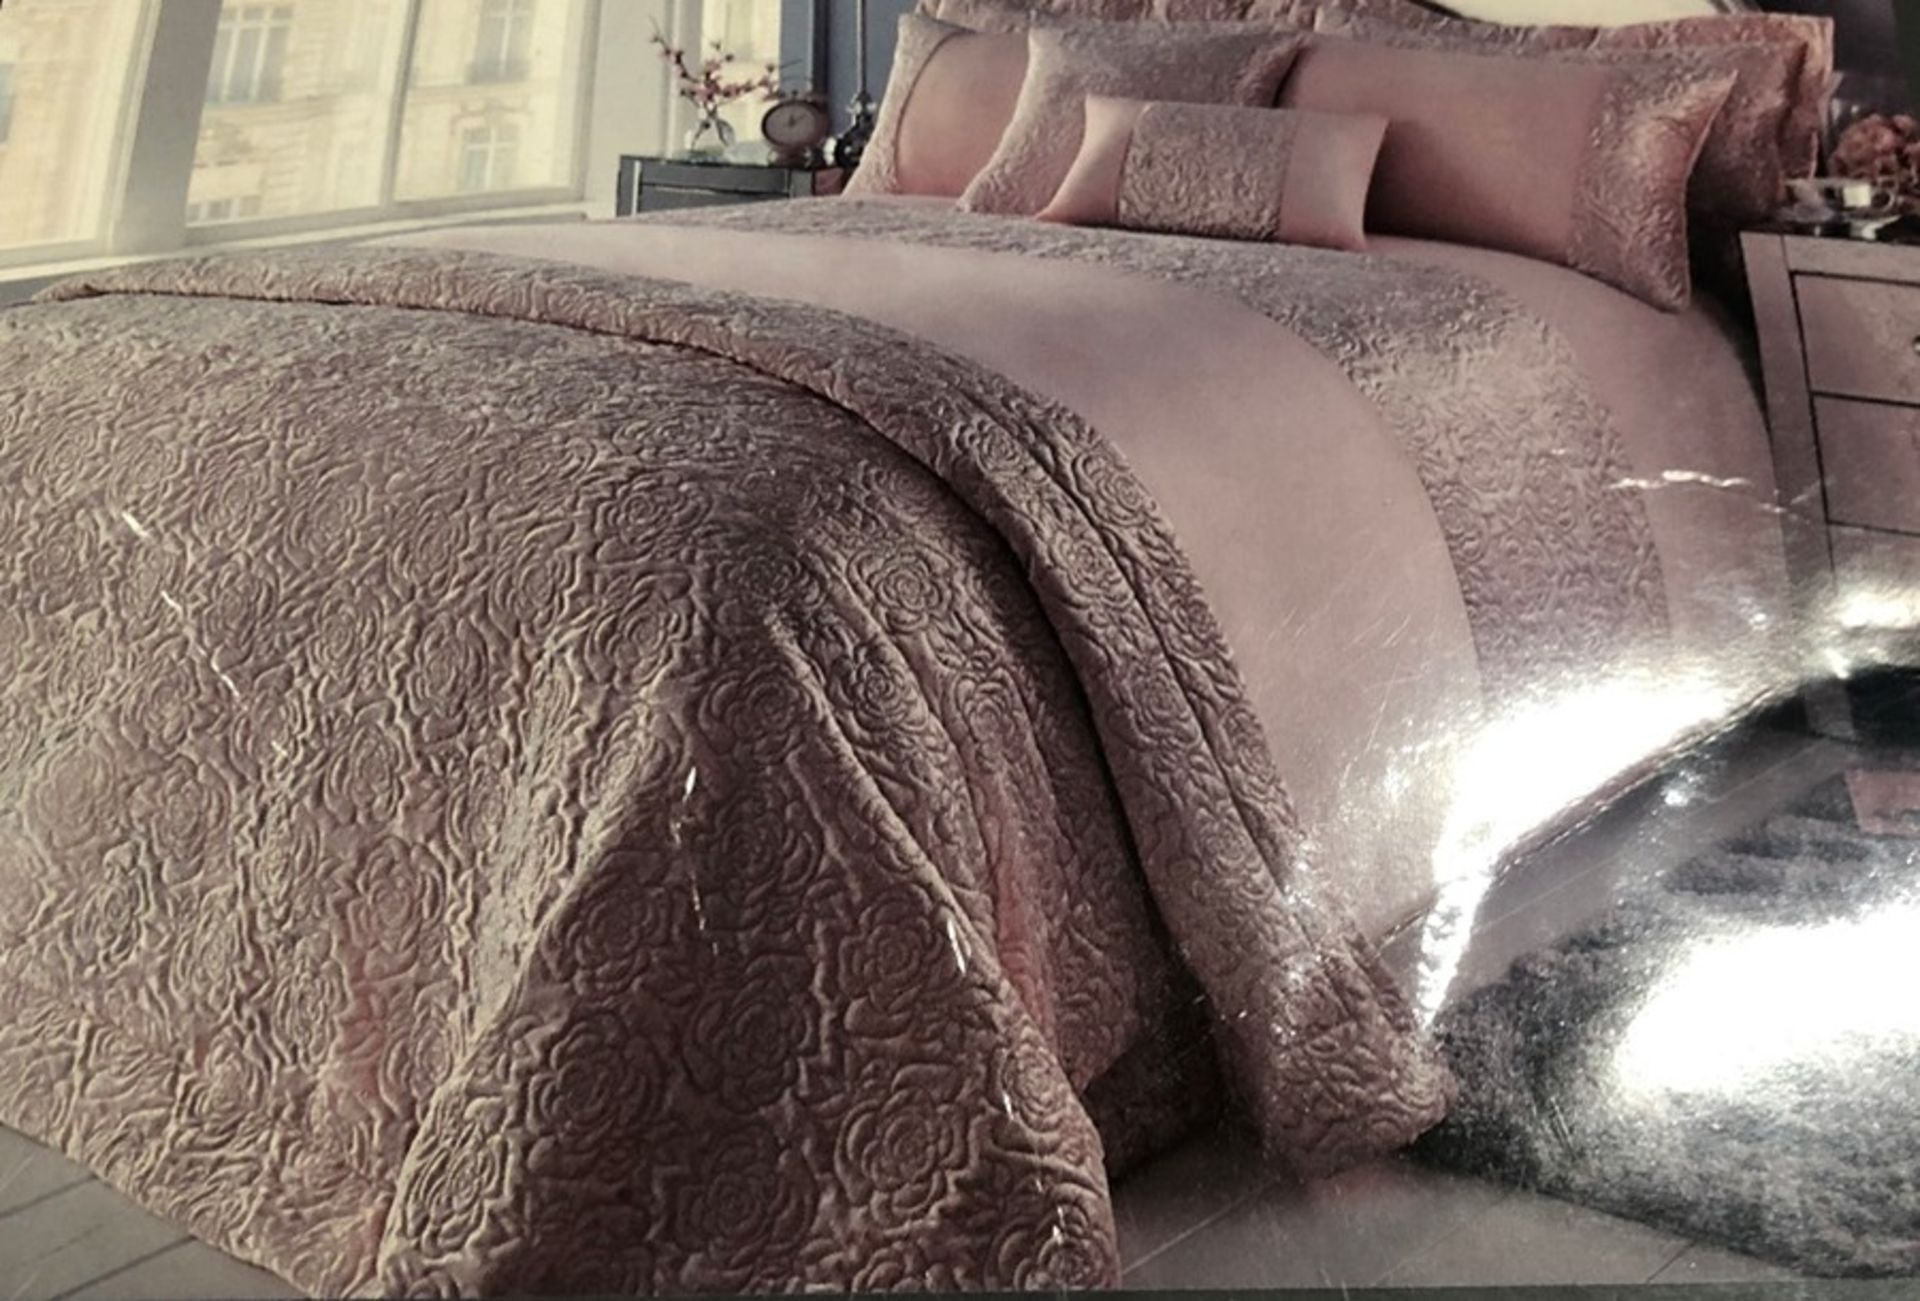 Lot 52 - 1 BAGGED CRUSHED VELVET DUVET SET IN CHAMPAGNE / RRP £87.99 (PUBLIC VIEWING AVAILABLE)